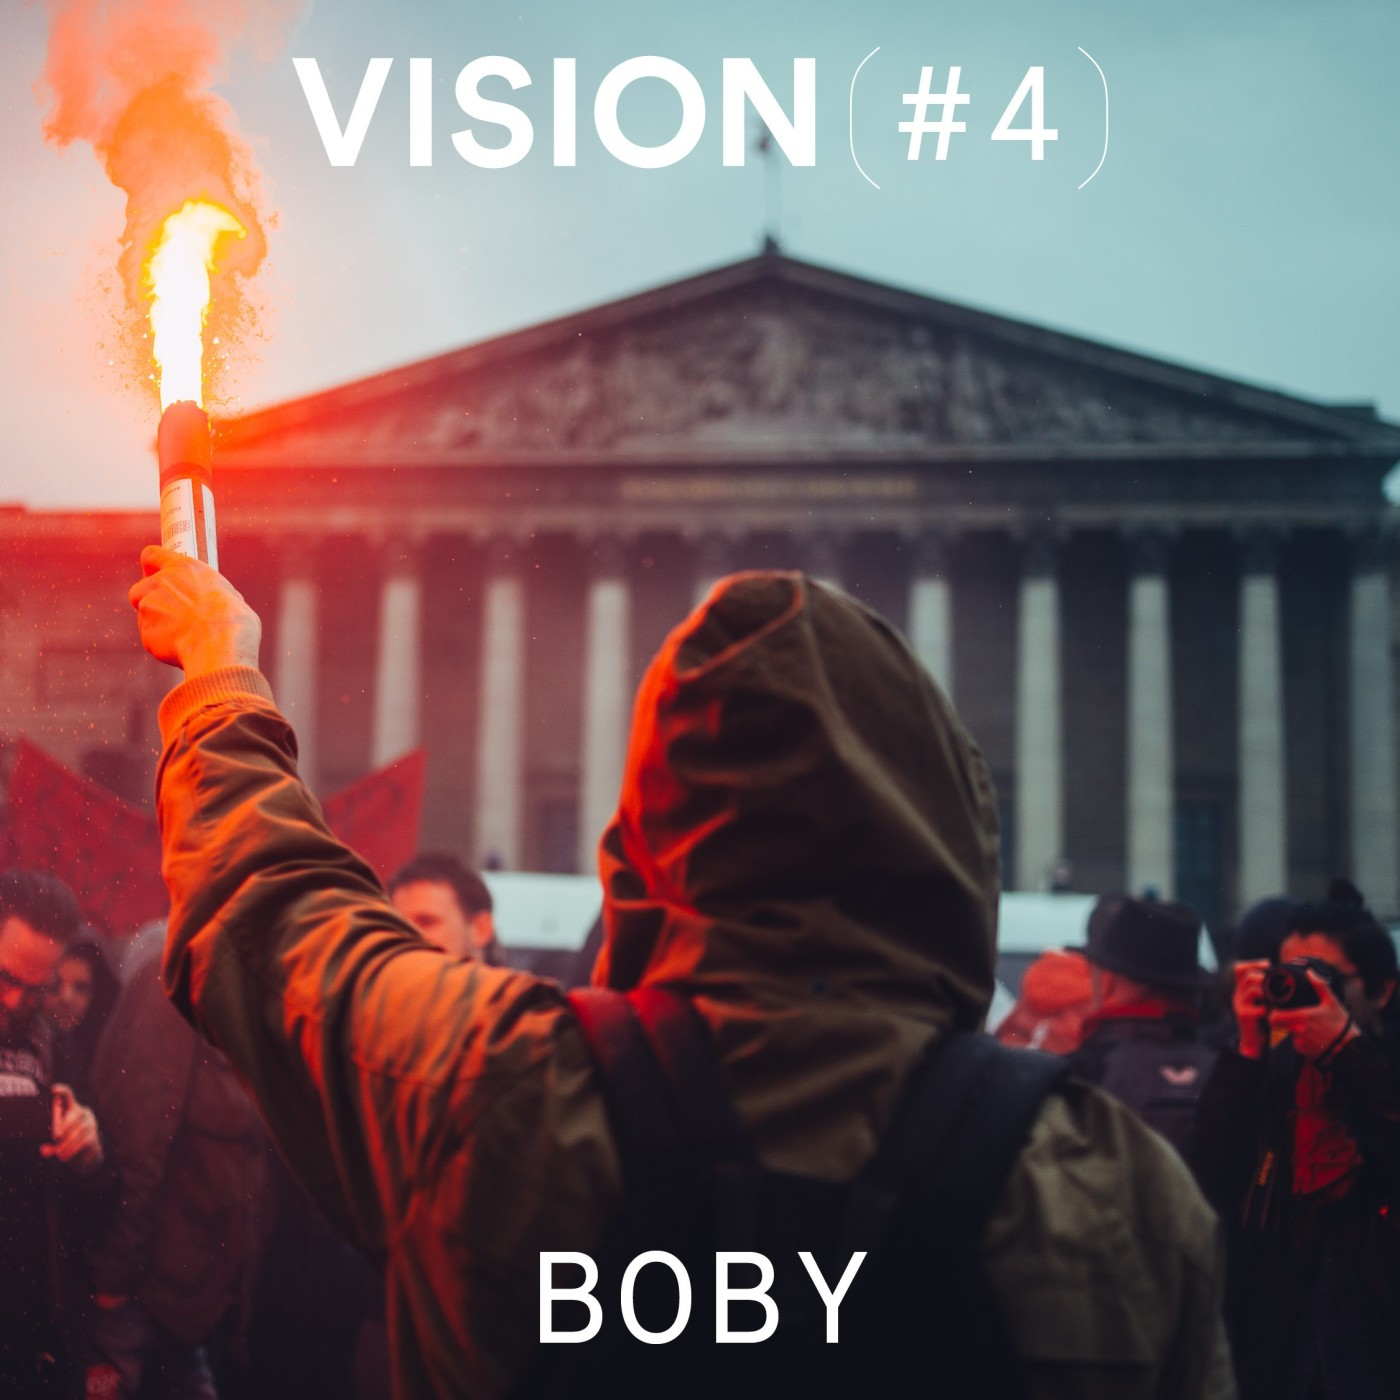 VISION #4 - BOBY